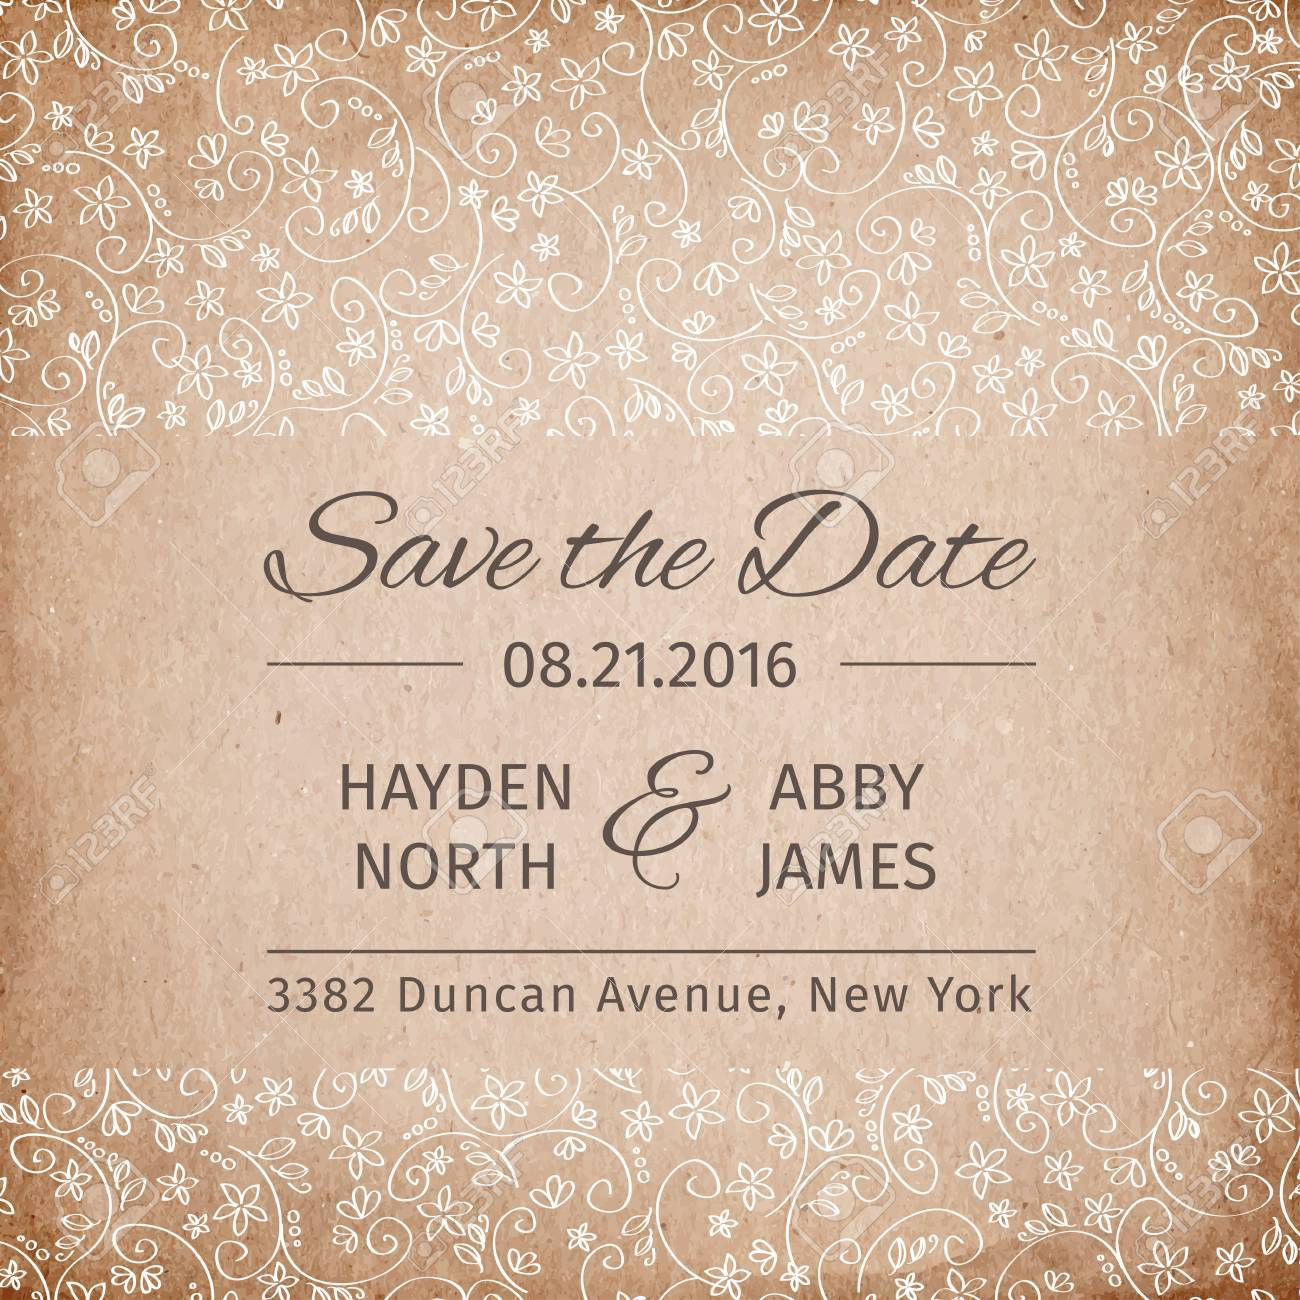 save the date wedding invitation template vectorillustration royalty